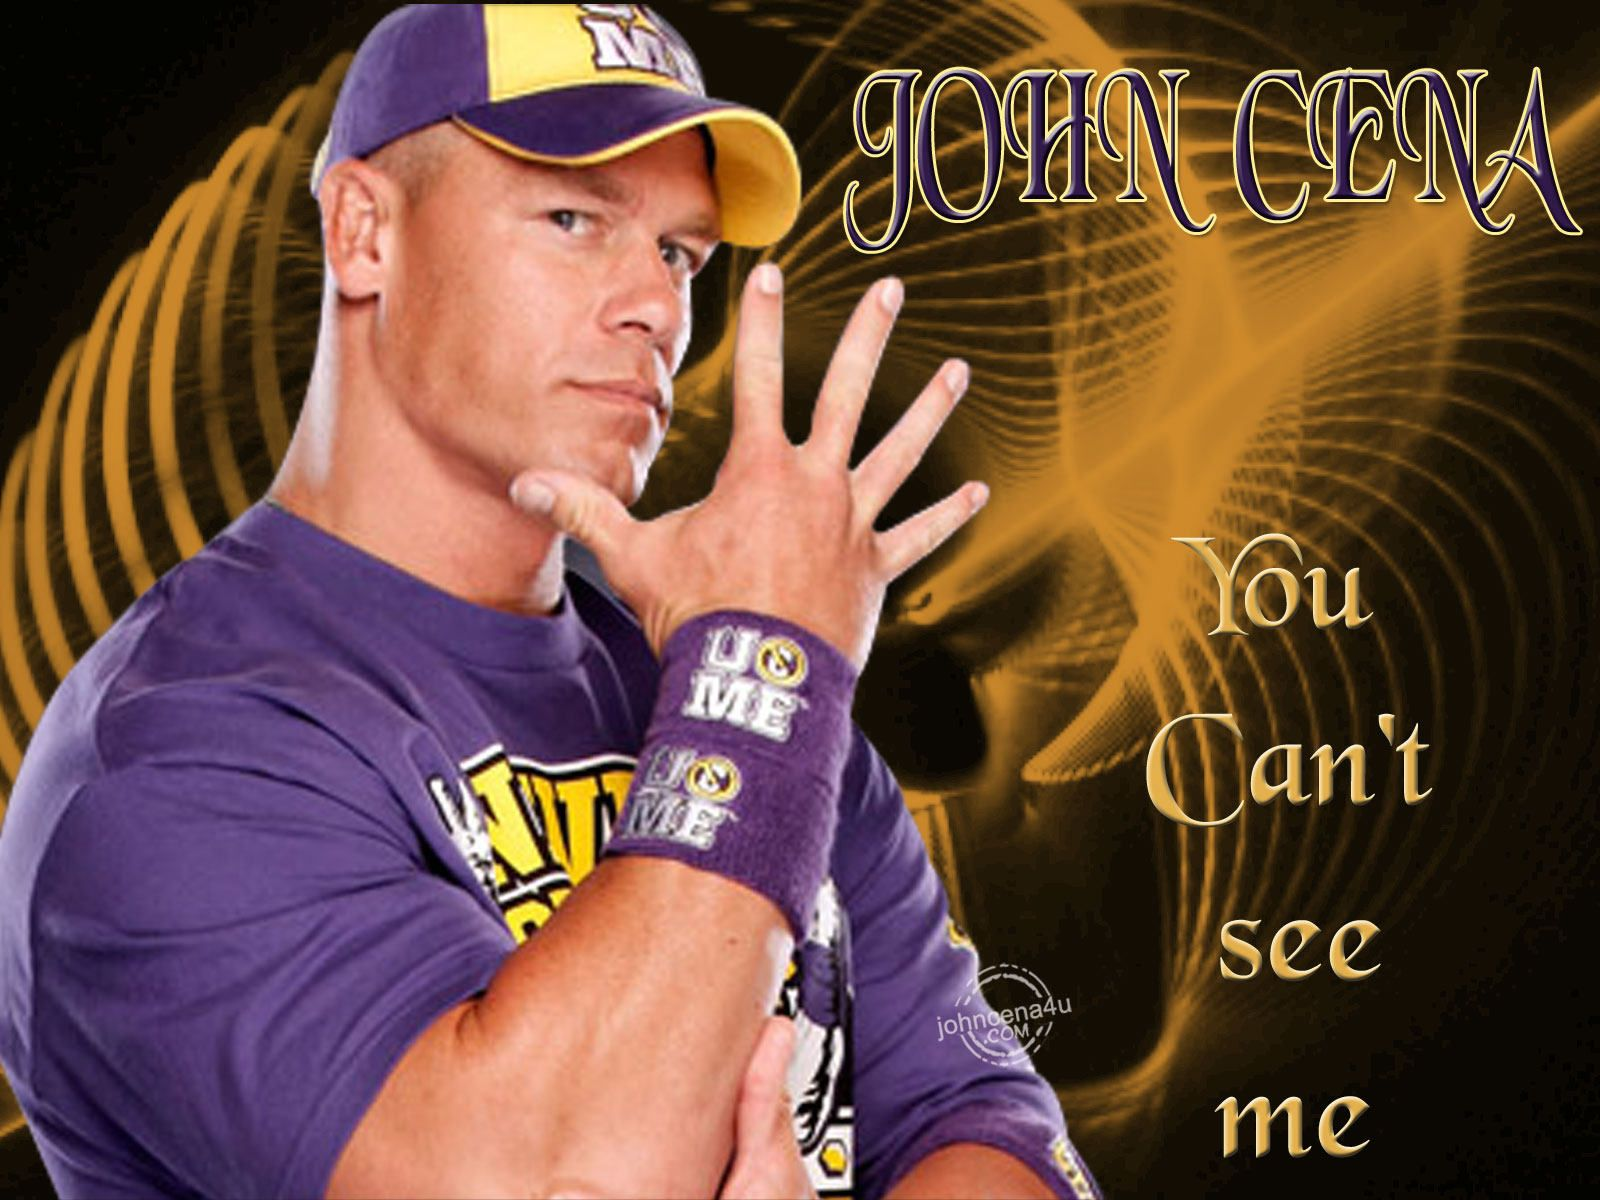 Wwe John Cena Wallpapers Hd Free Download 1278 720 John Cena Hd